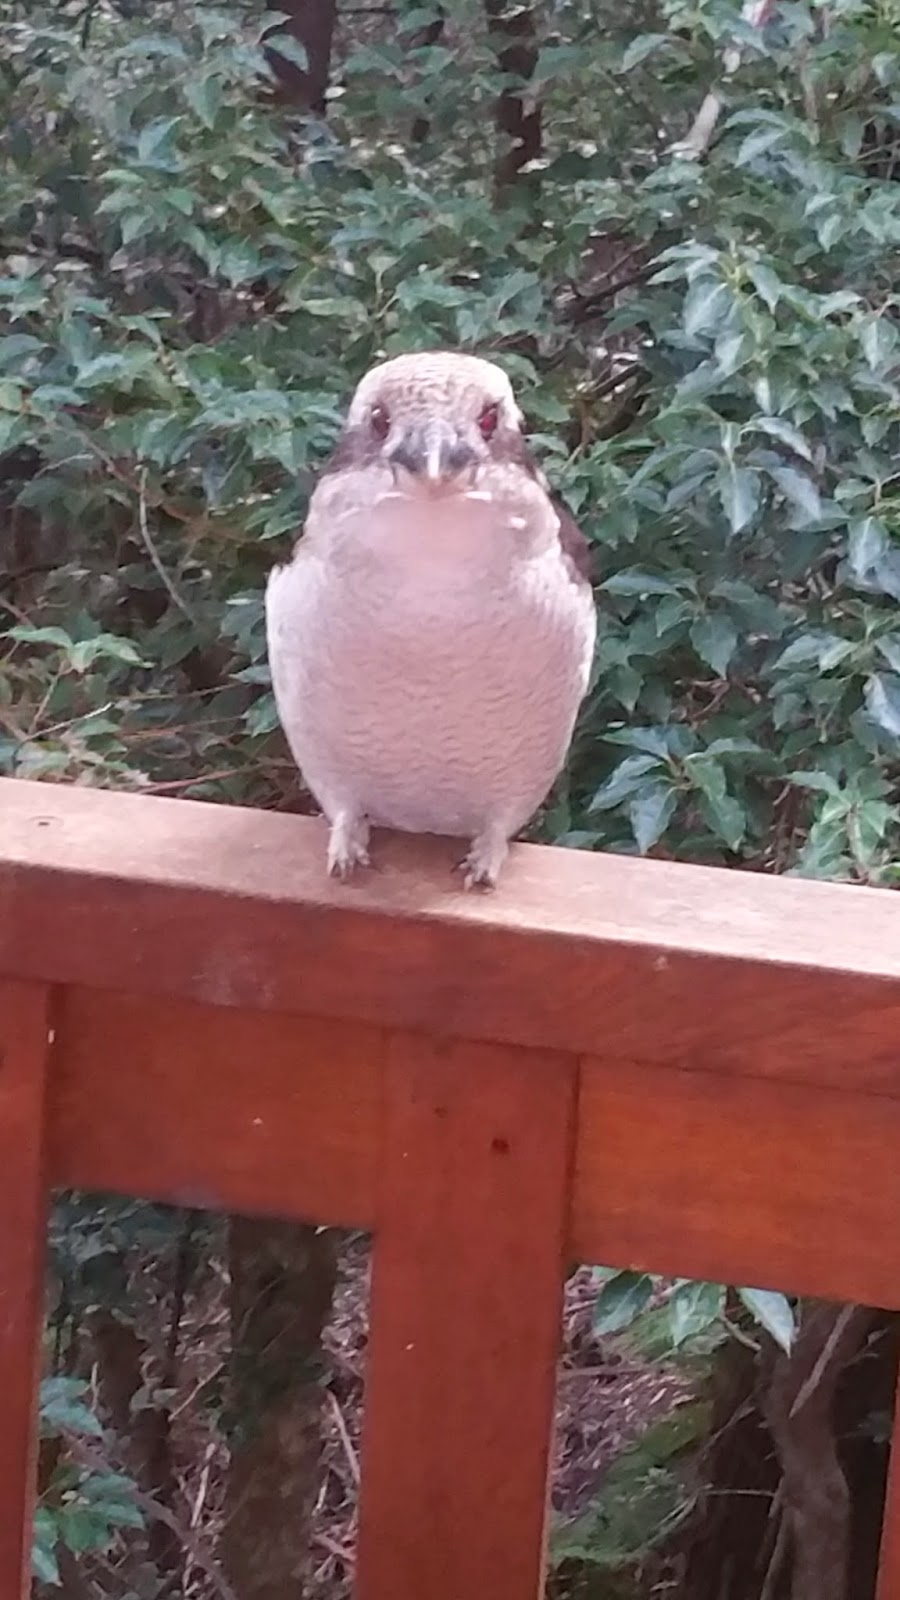 Kookaburra in Hornsby, NSW - at my new house after migrating to Sydney